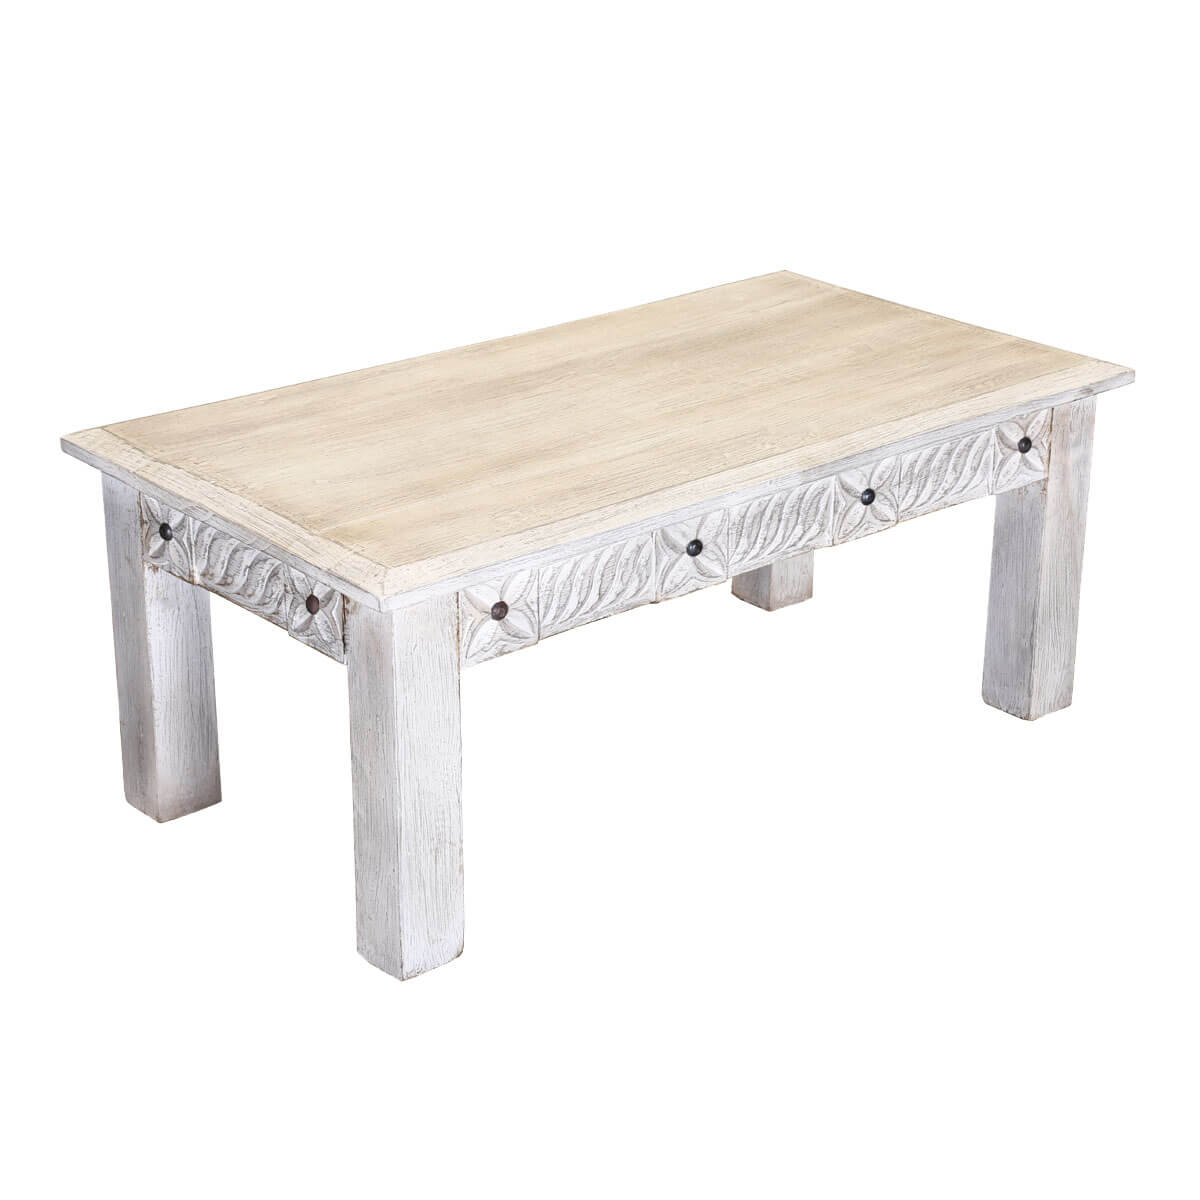 "Winter White 43"" Tudor Reclaimed Wood Rustic Coffee Table"